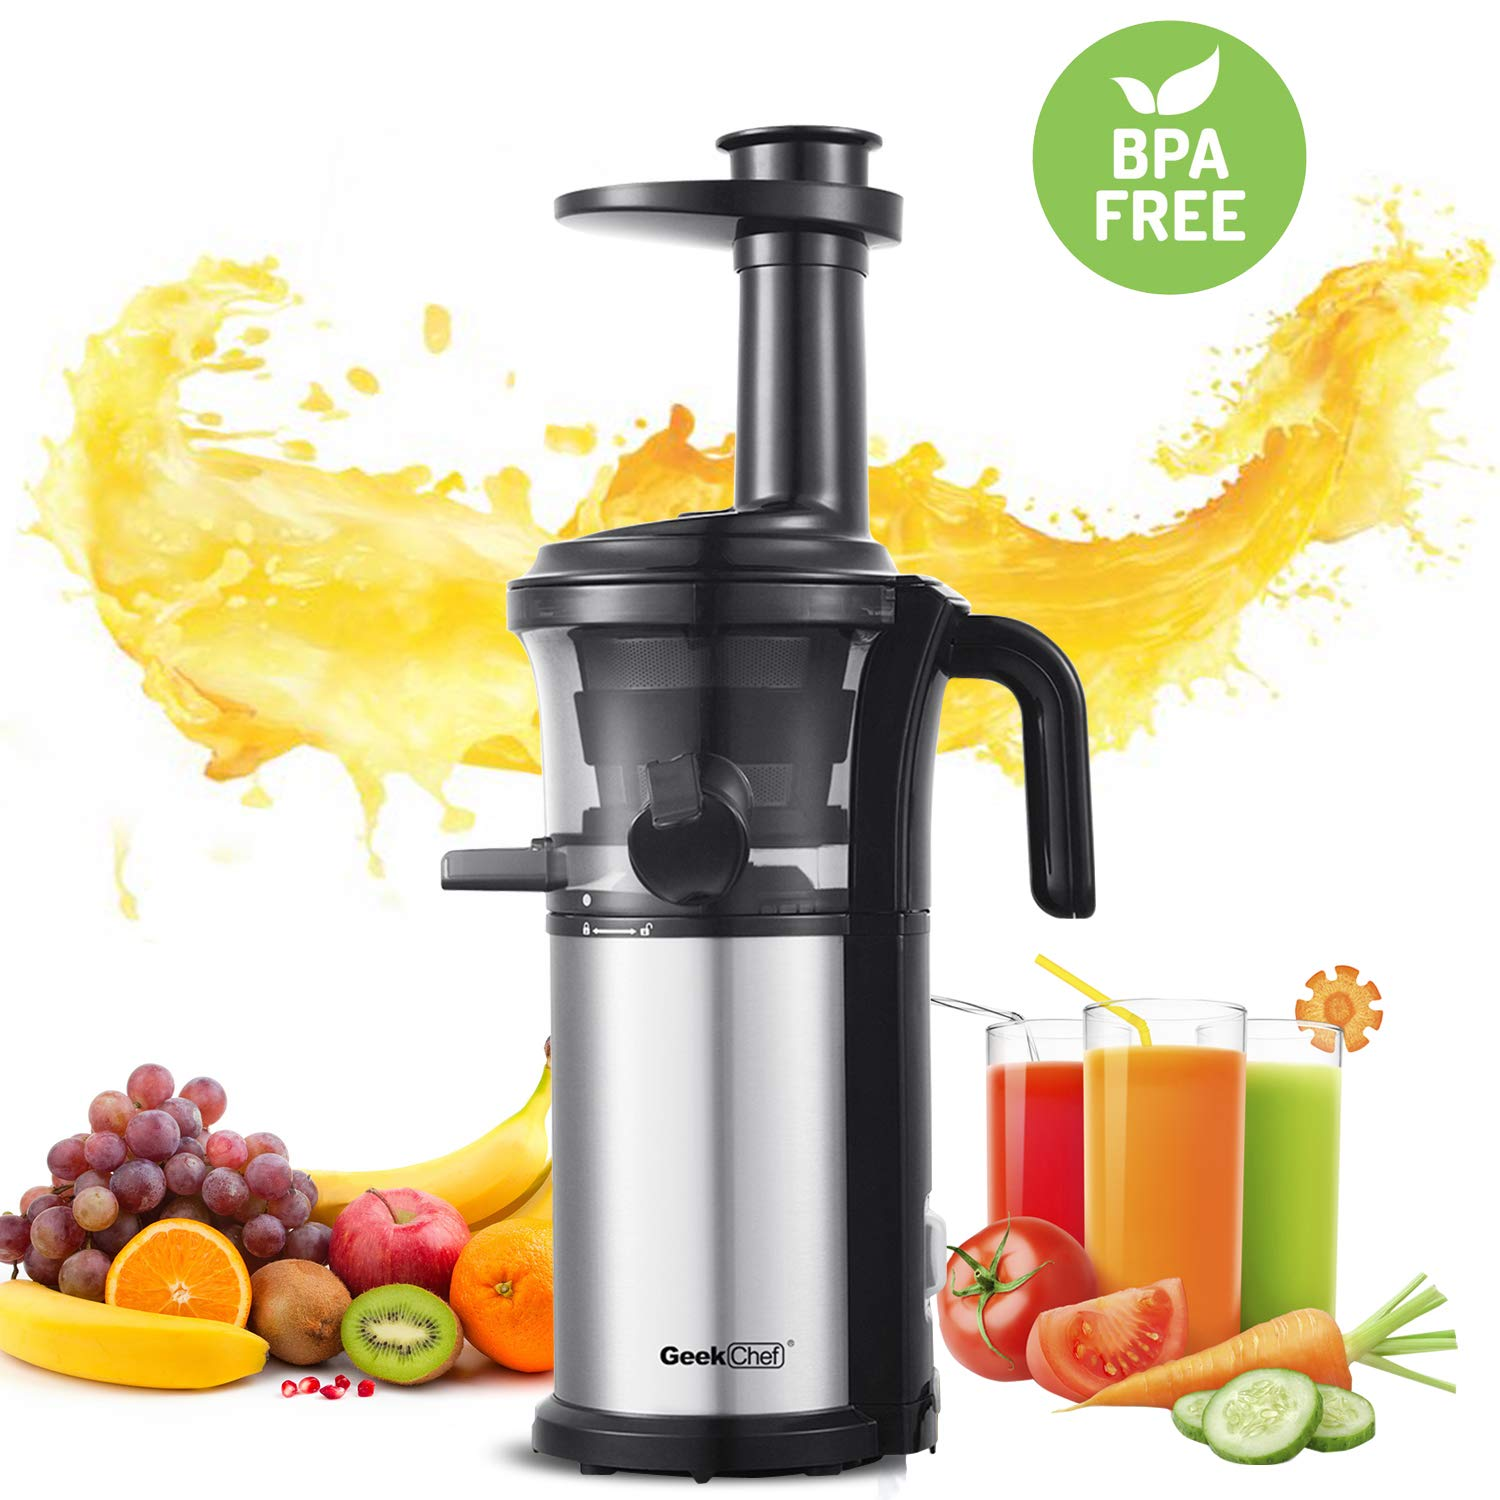 Slow Masticating Juicer Geek Chef Extractor Compact Cold Press Juicer Machine with Portable Handle Quiet Motor Reverse Function Juice Jug and Clean Brush for High Nutrient Fruit Vegetable Juice